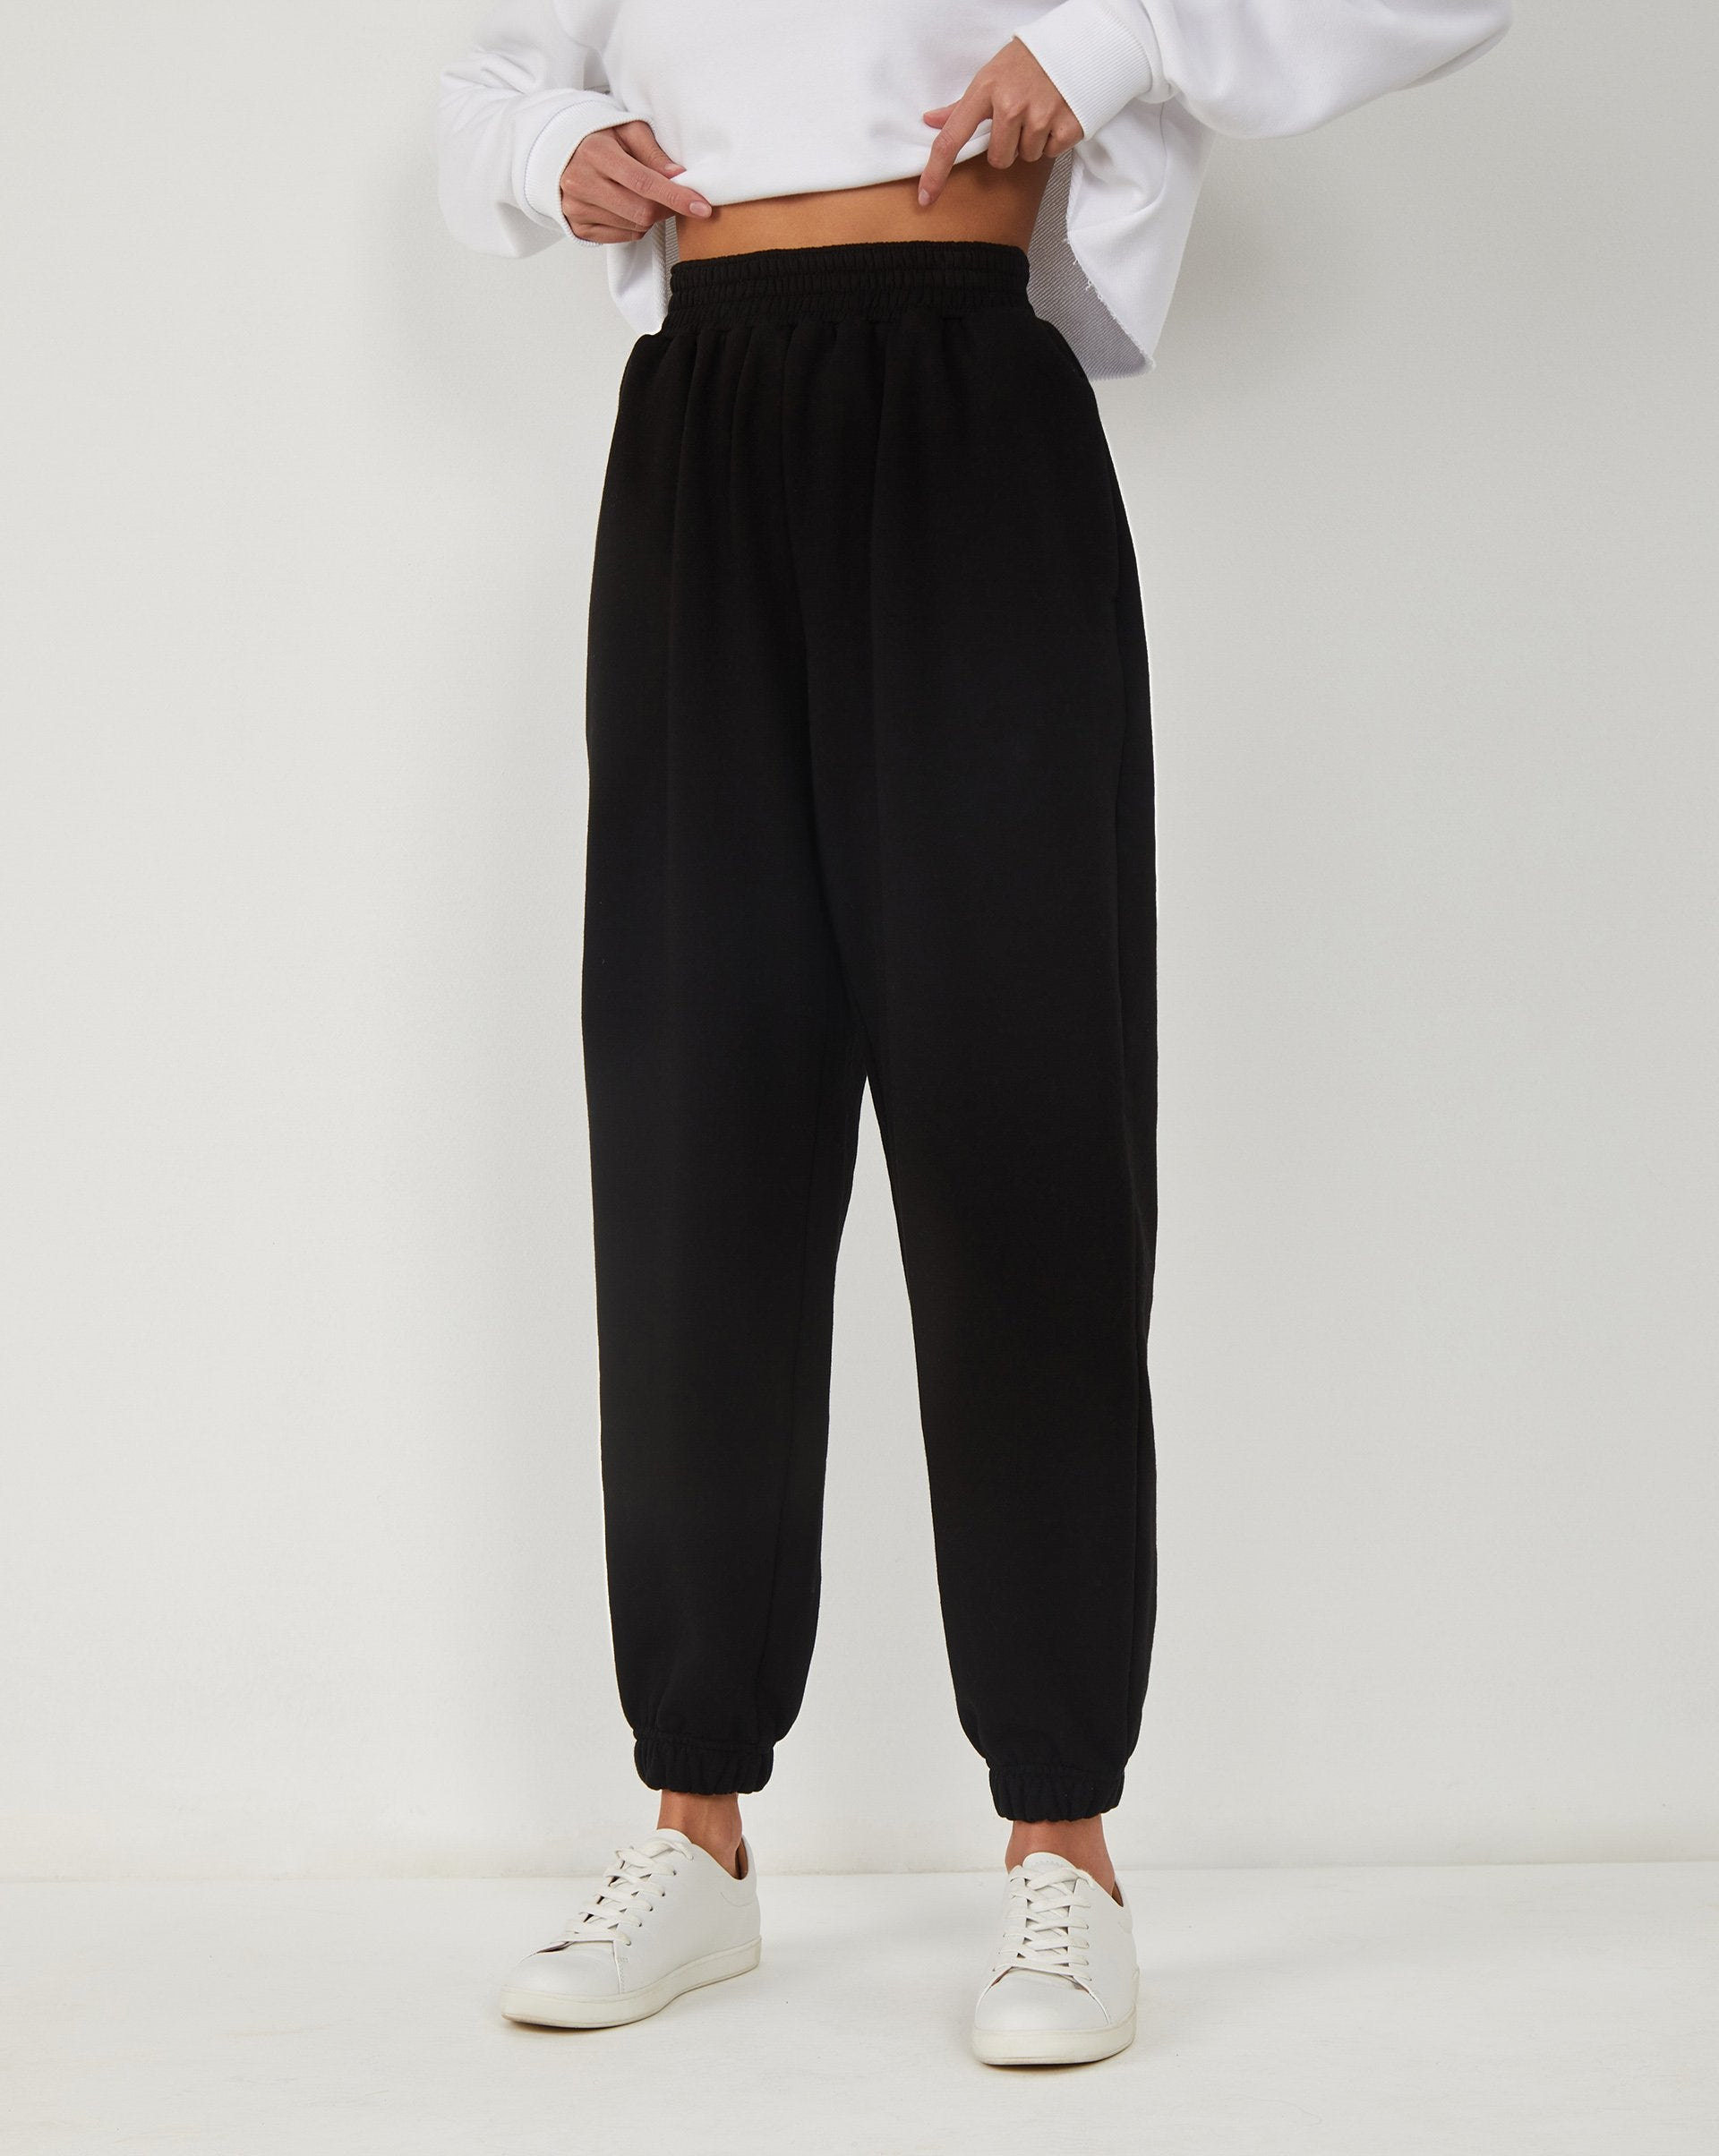 High waist track pants - 12 STOREEZ